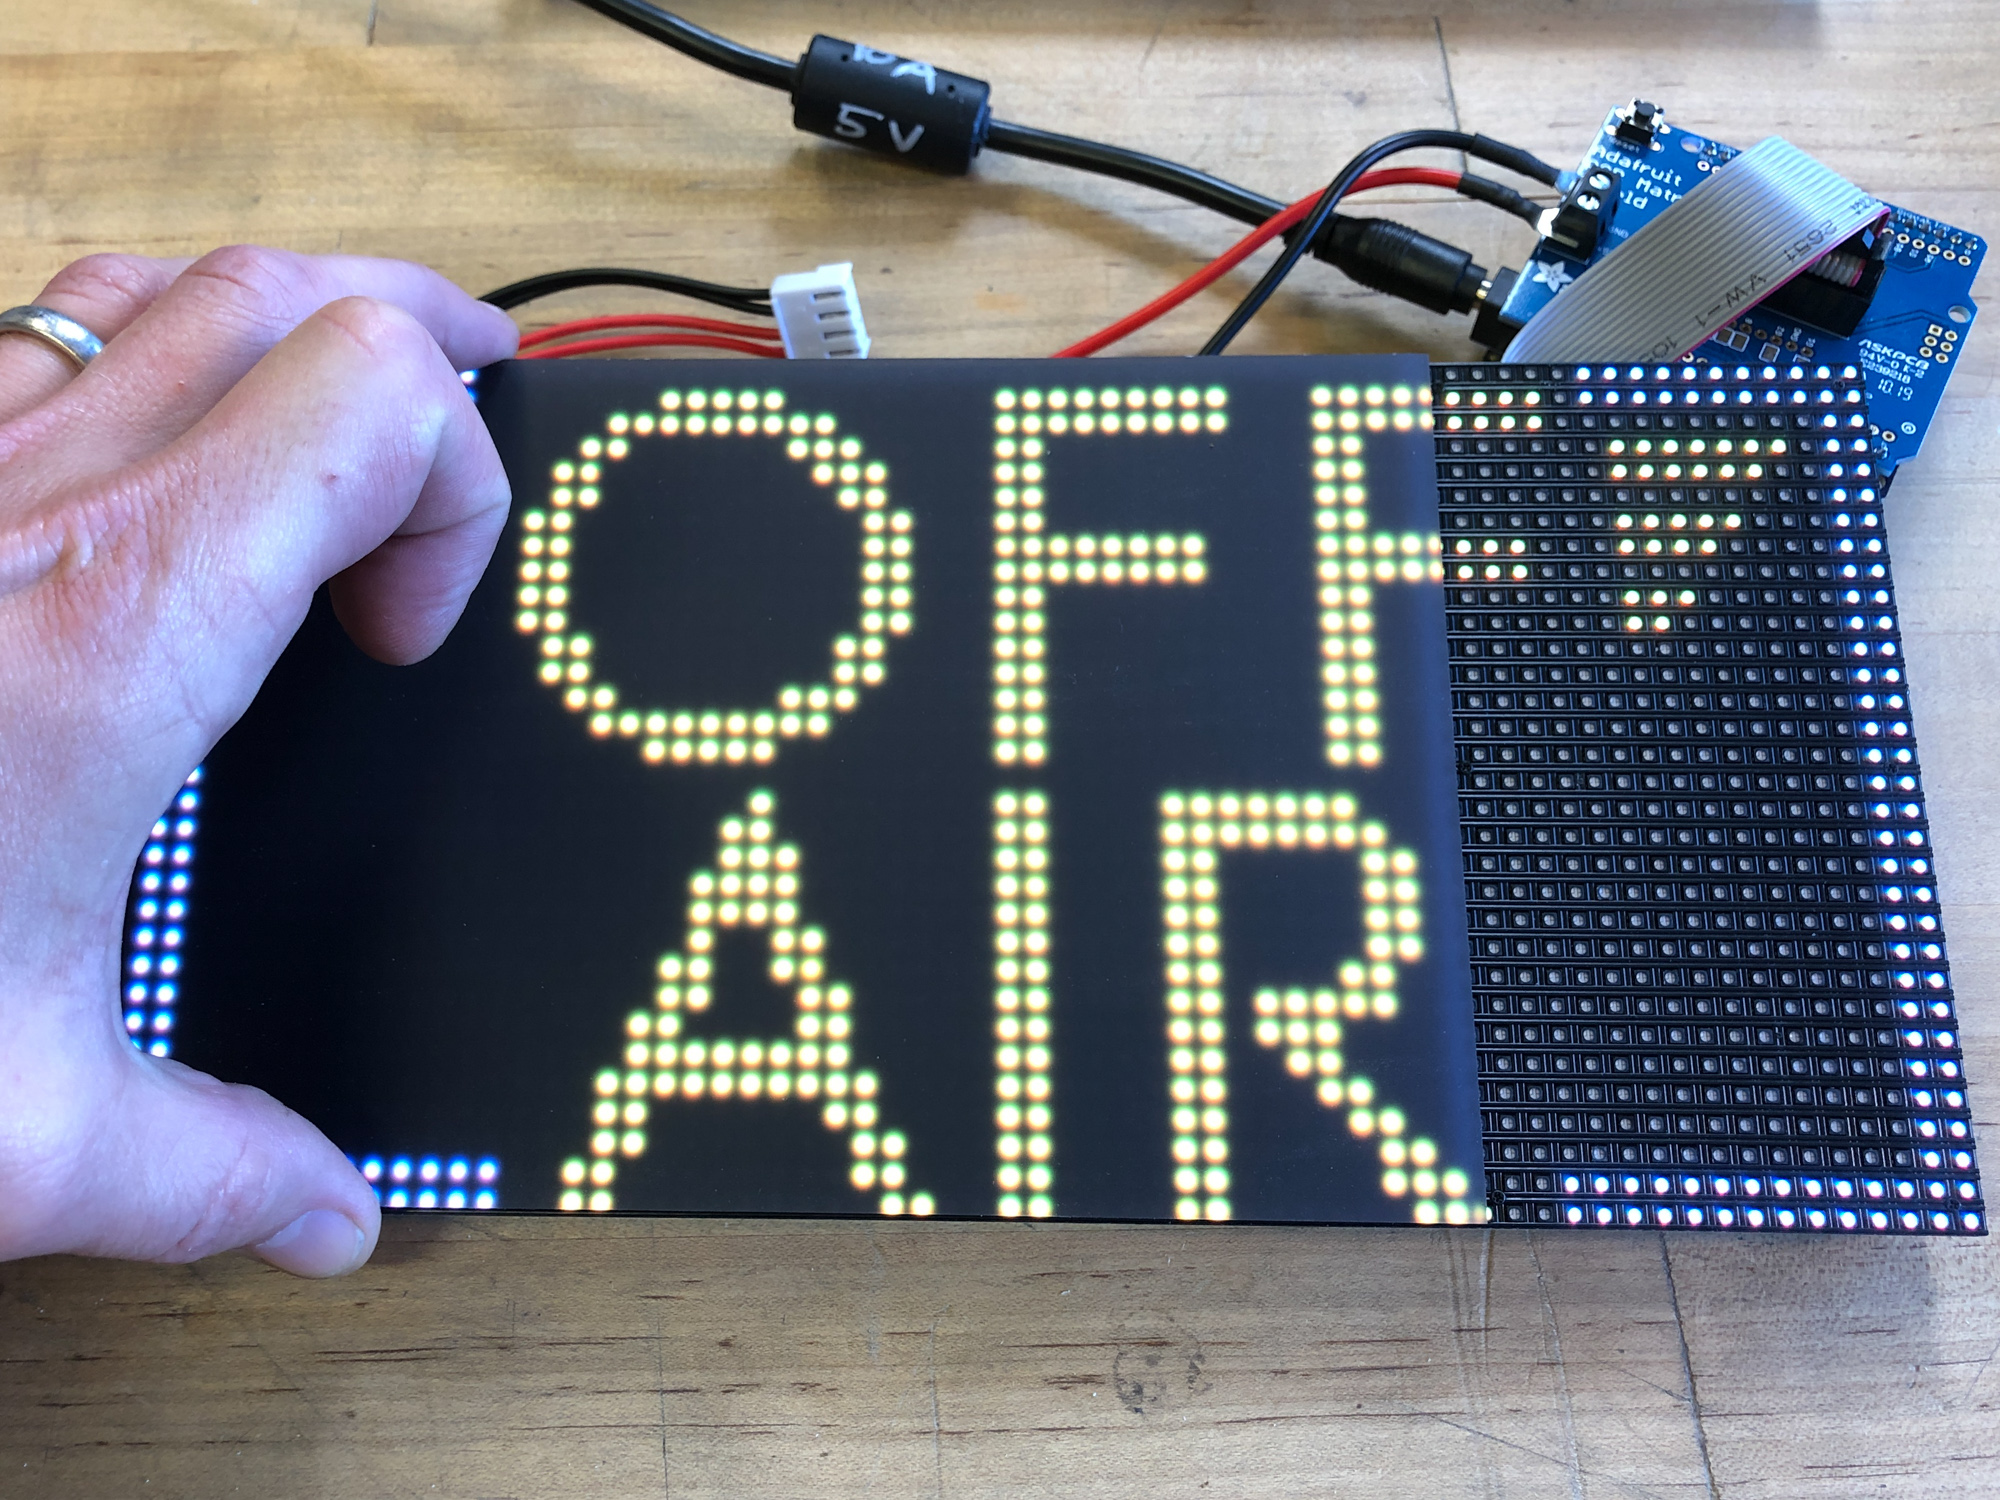 adafruit_io_led_matrices_onairbuild-3367.jpg